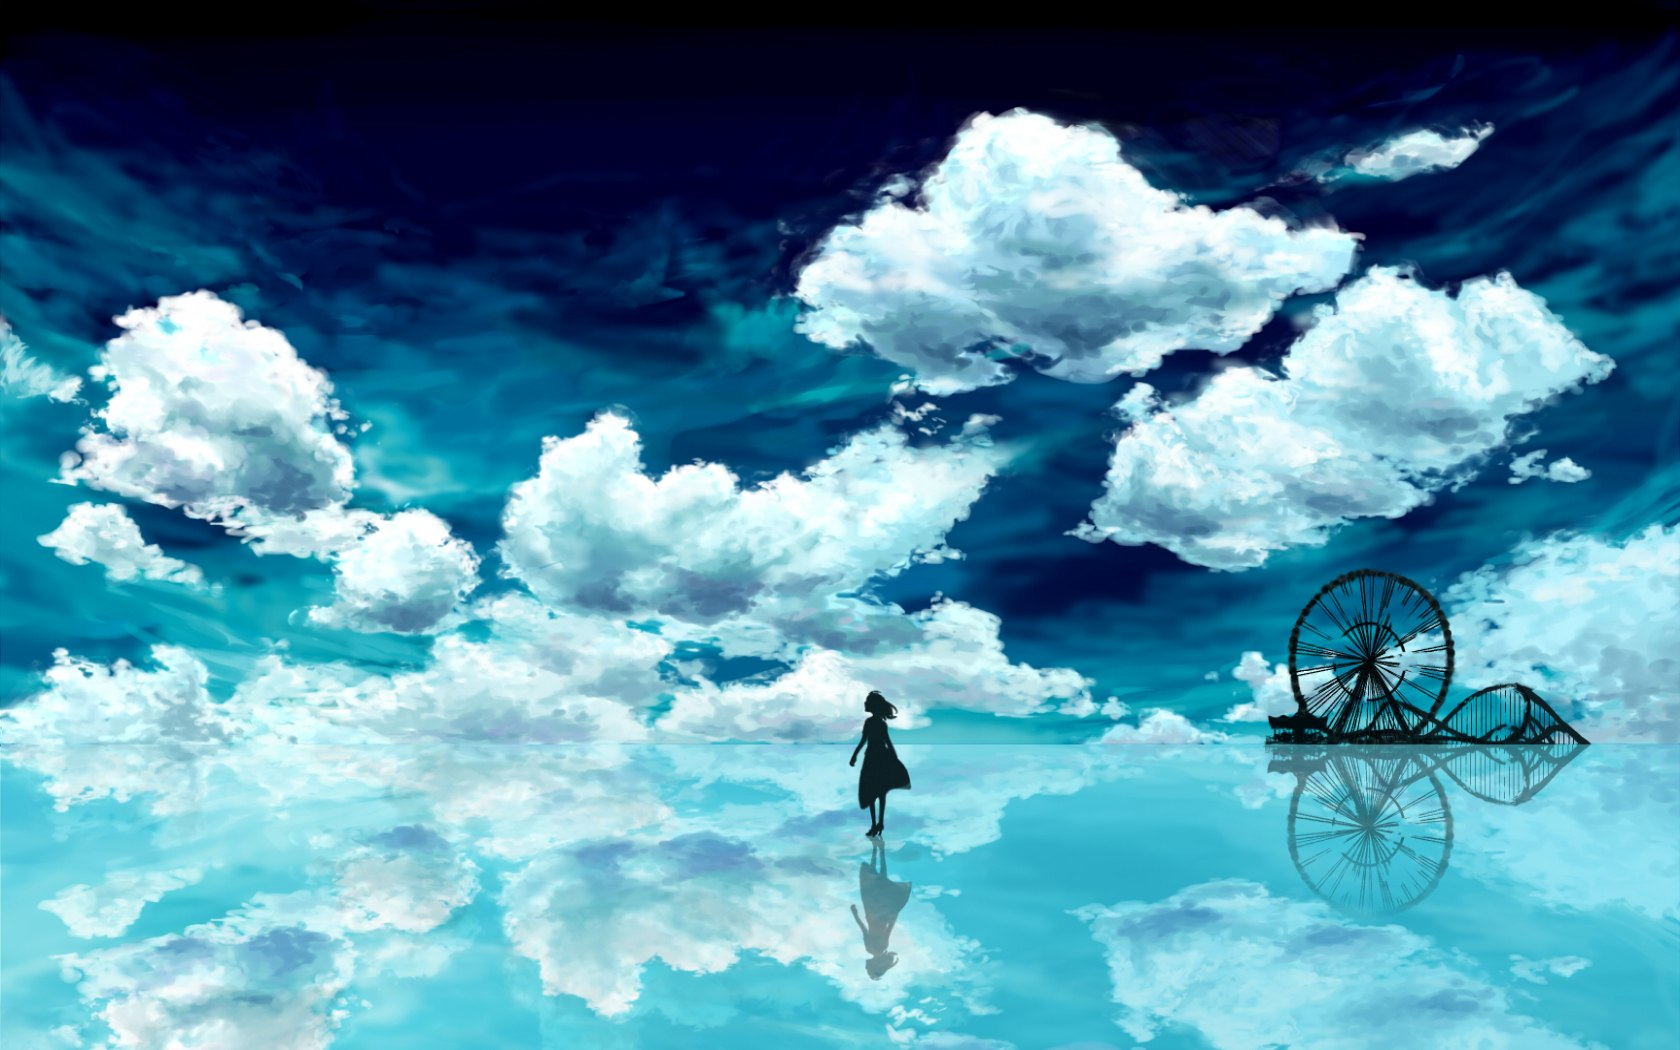 Anime Scenery Wallpaper | Beautiful Anime Scenery Wallpapers | 37